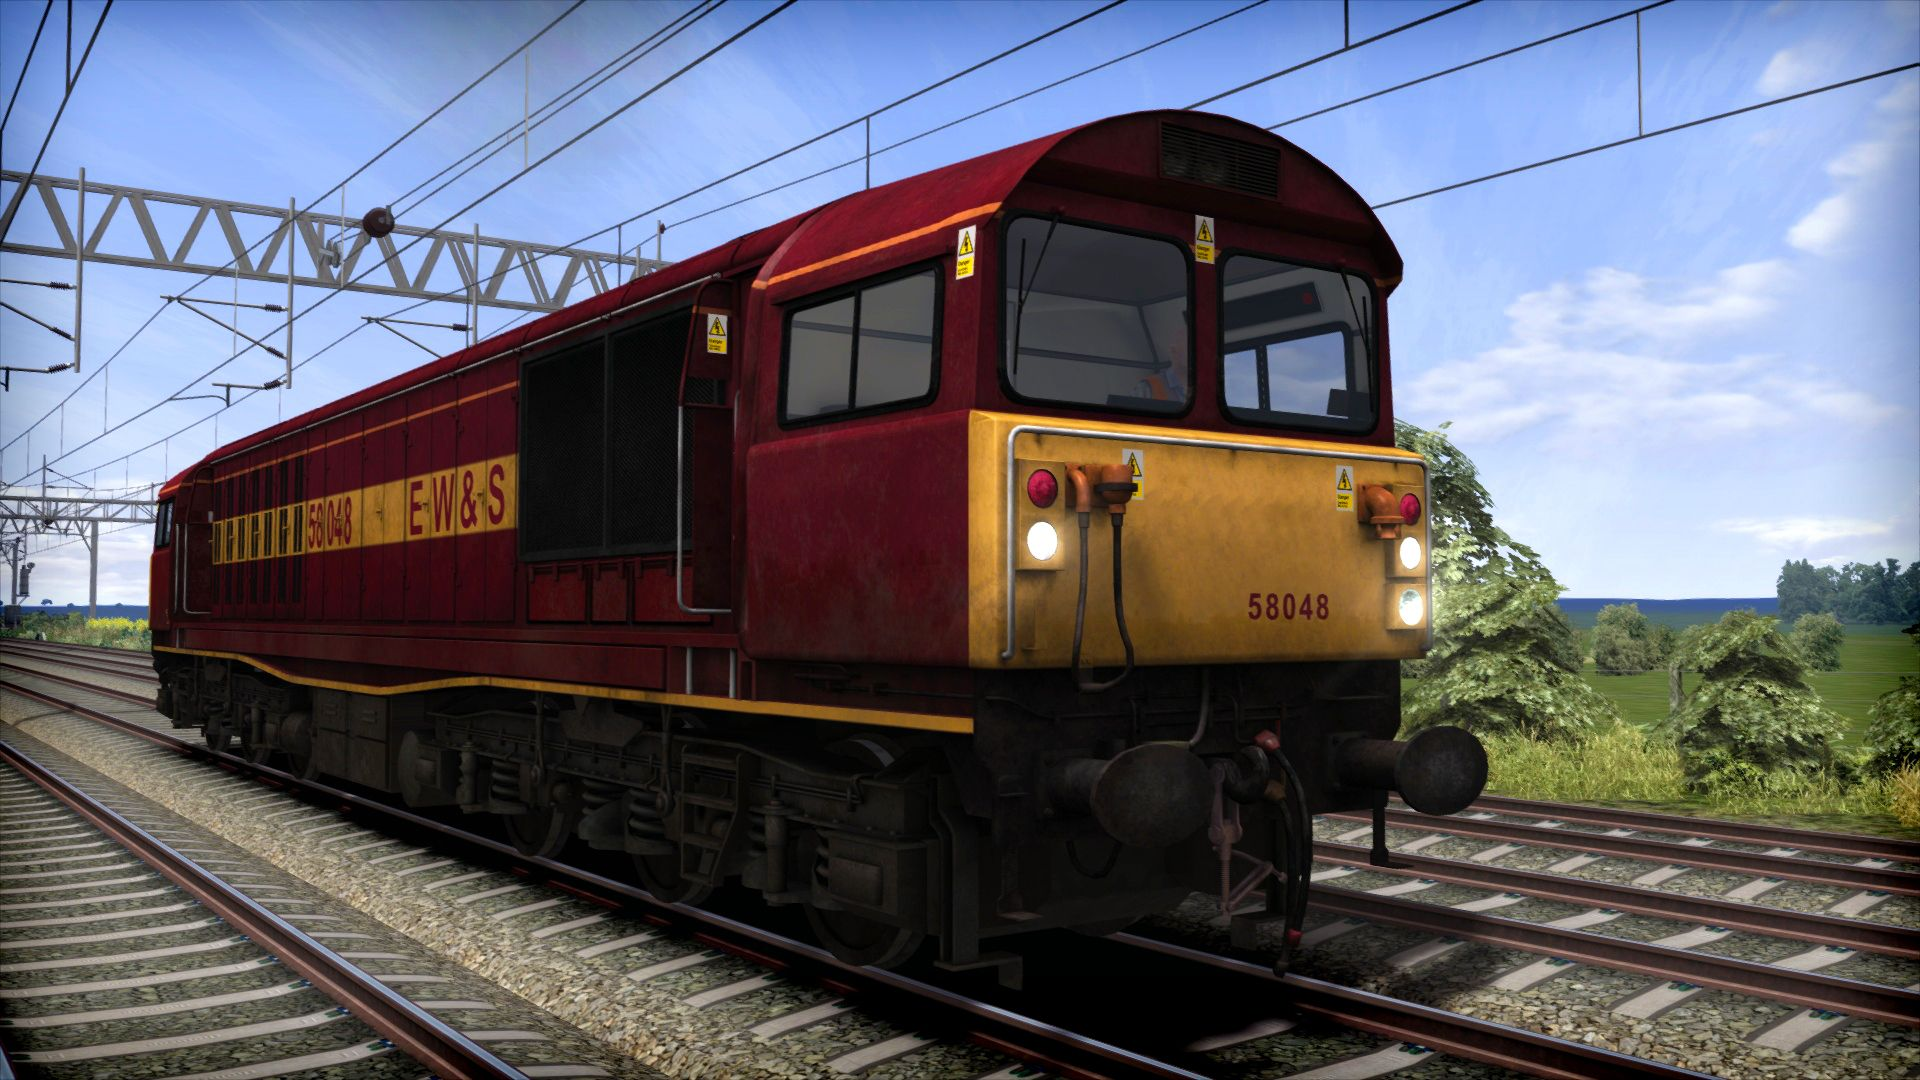 Image showing the EWS liveried Class 58 locomotive available from the TS Marketplace